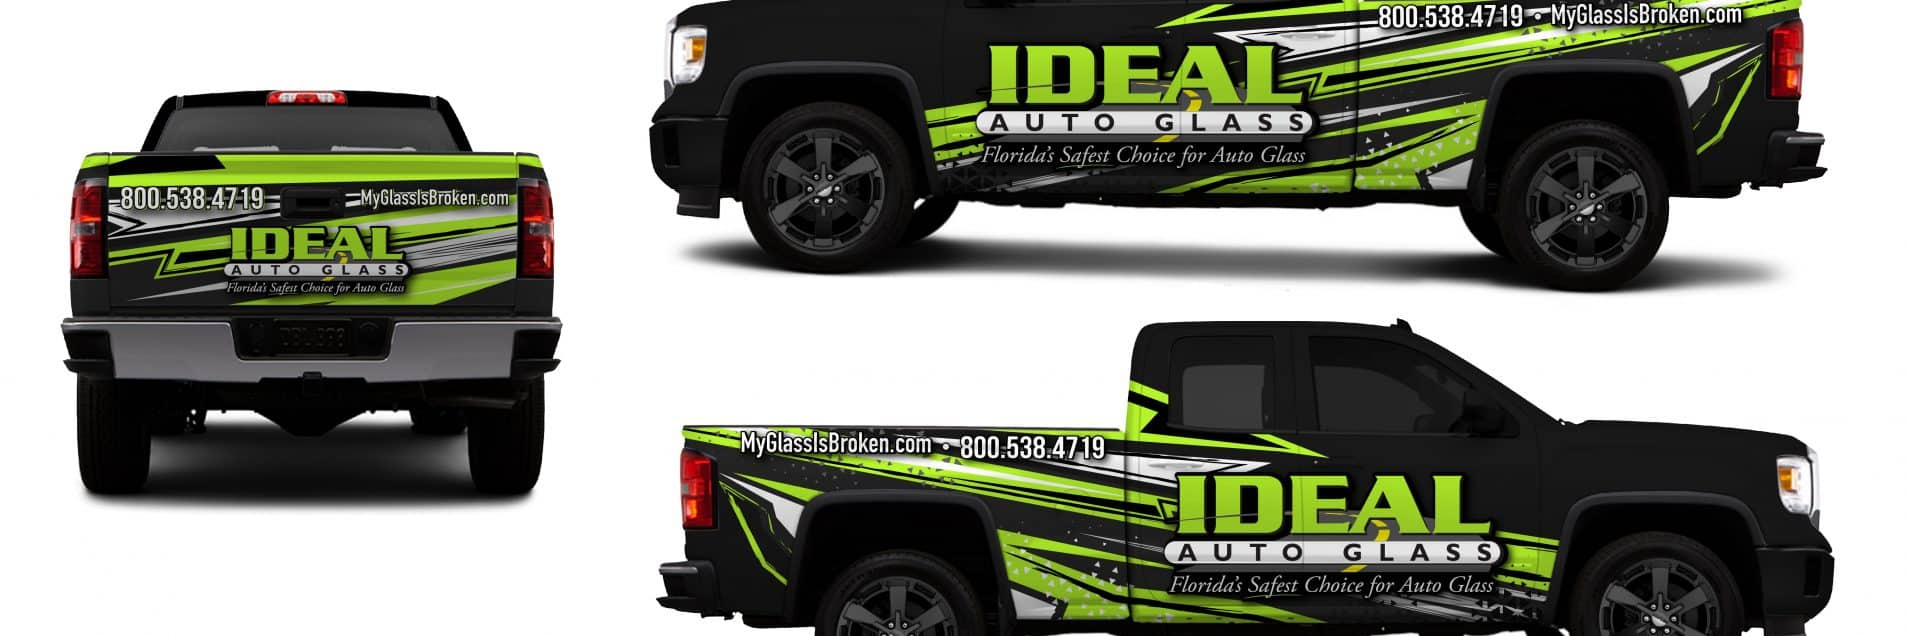 2018 Honda Element >> Idea Auto Glass Silverado Partial Wrap | Skepple Inc